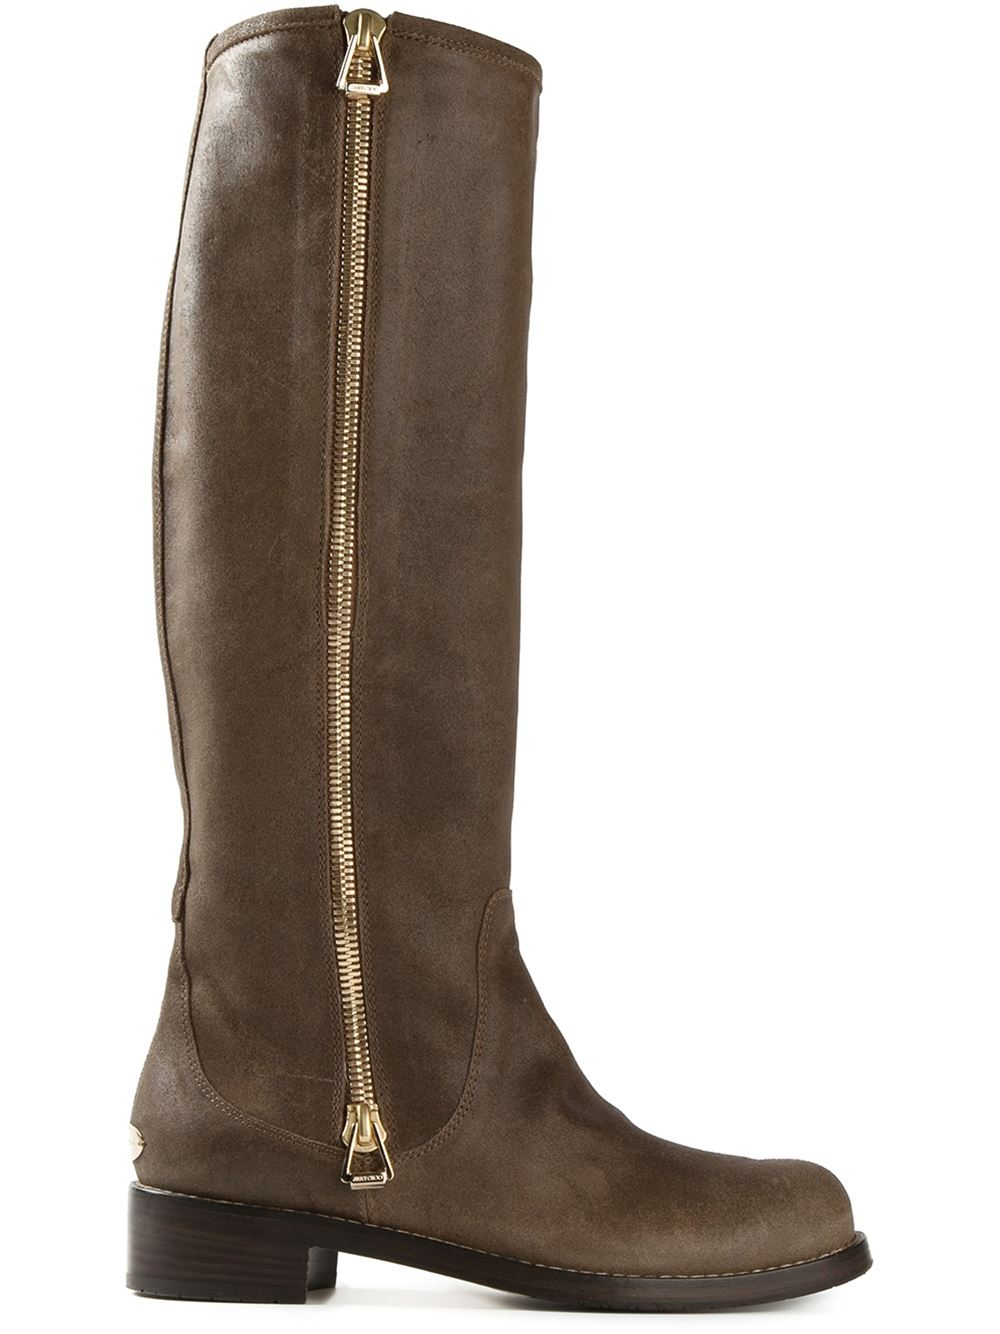 Jimmy choo 'Doreen' Boots in Brown | Lyst